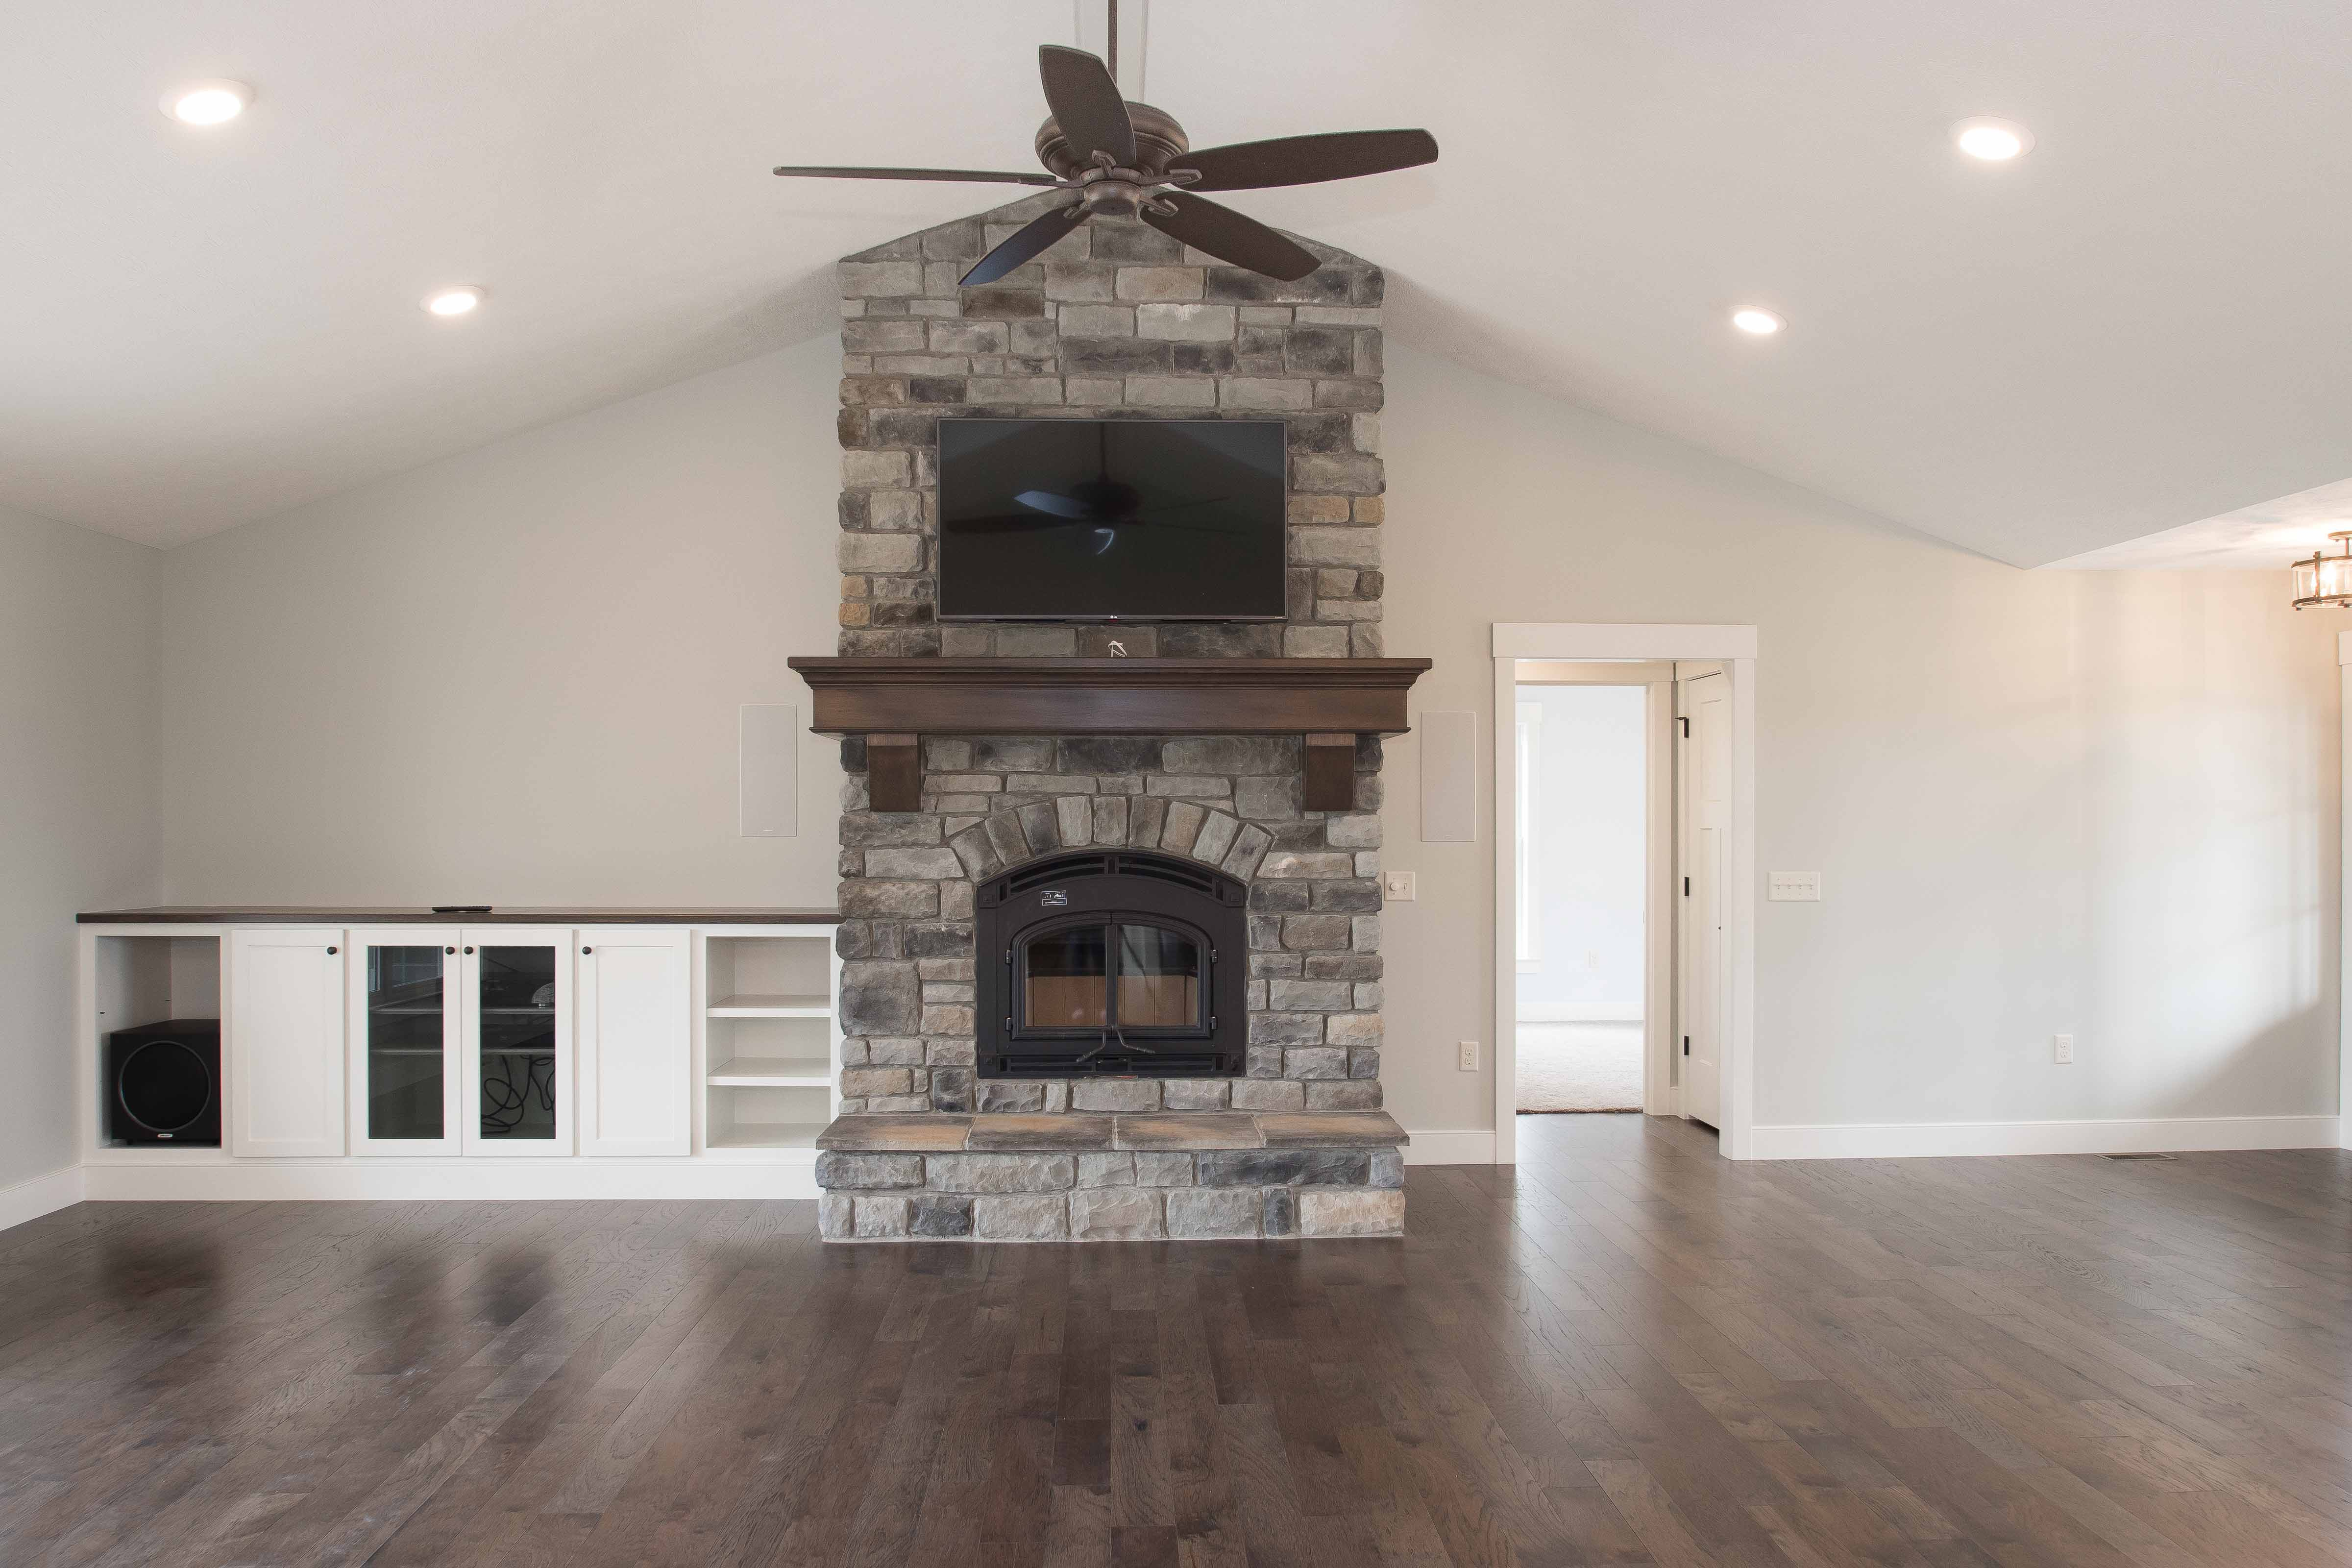 Quadrafire 7100 Wood Burning Fireplace, Mission Hill front with all black trim, raised hearth, Elkwood Limestone